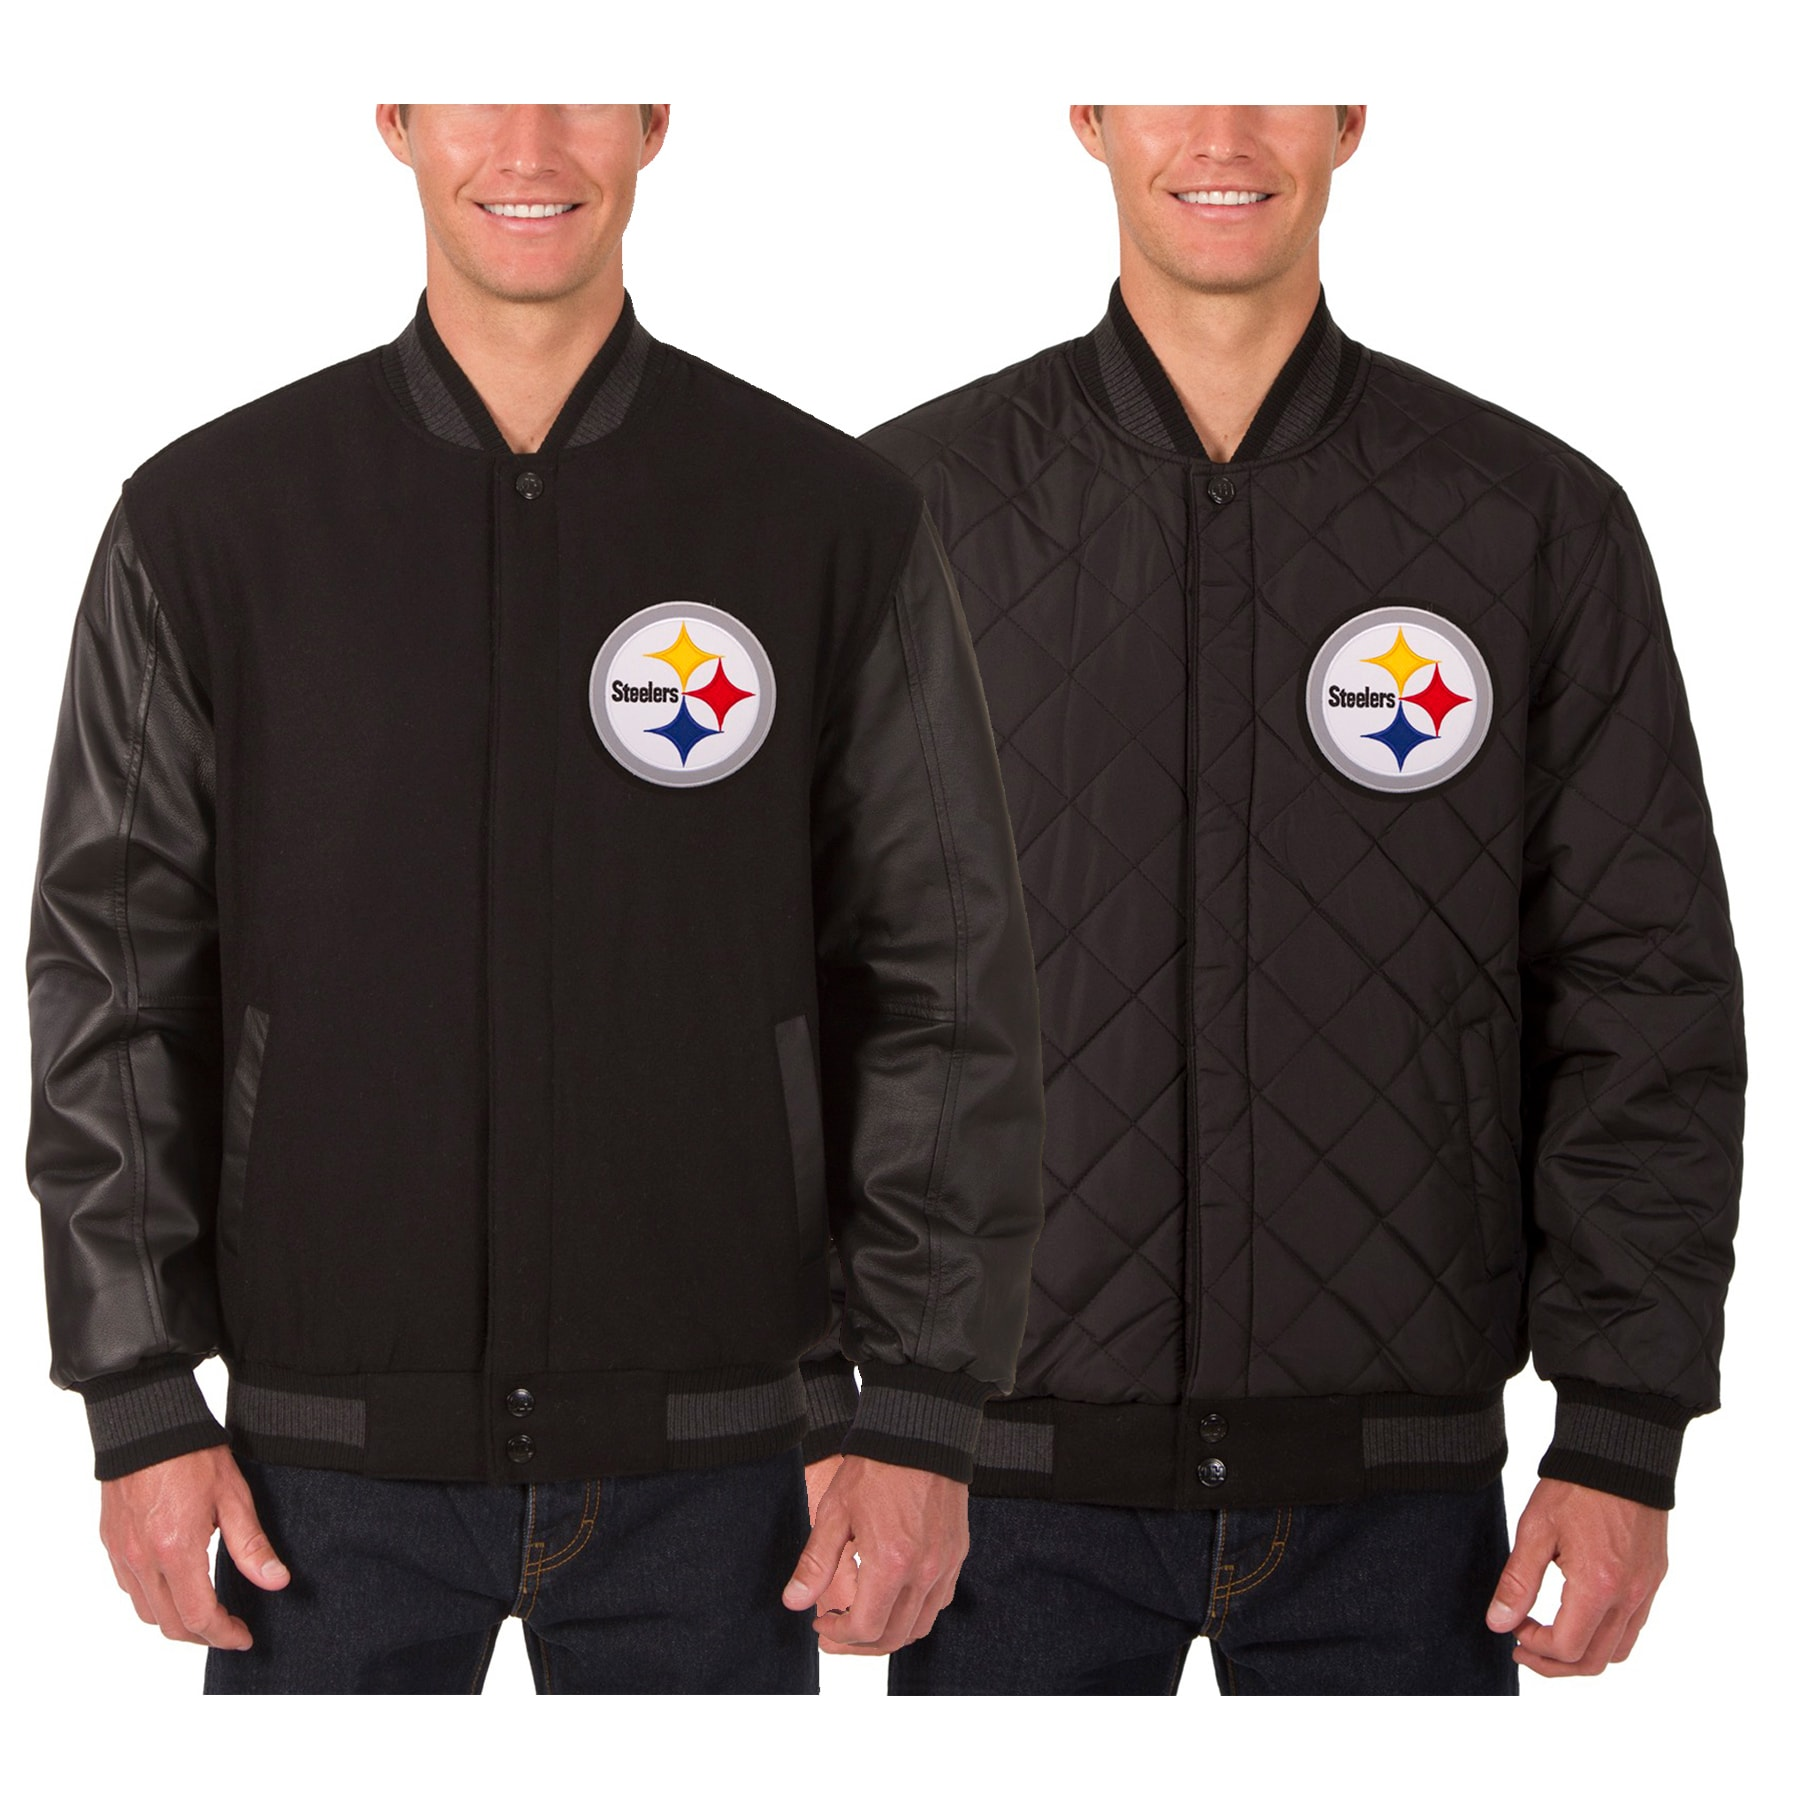 Pittsburgh Steelers JH Design Wool & Leather Reversible Jacket with Embroidered Logos - Black